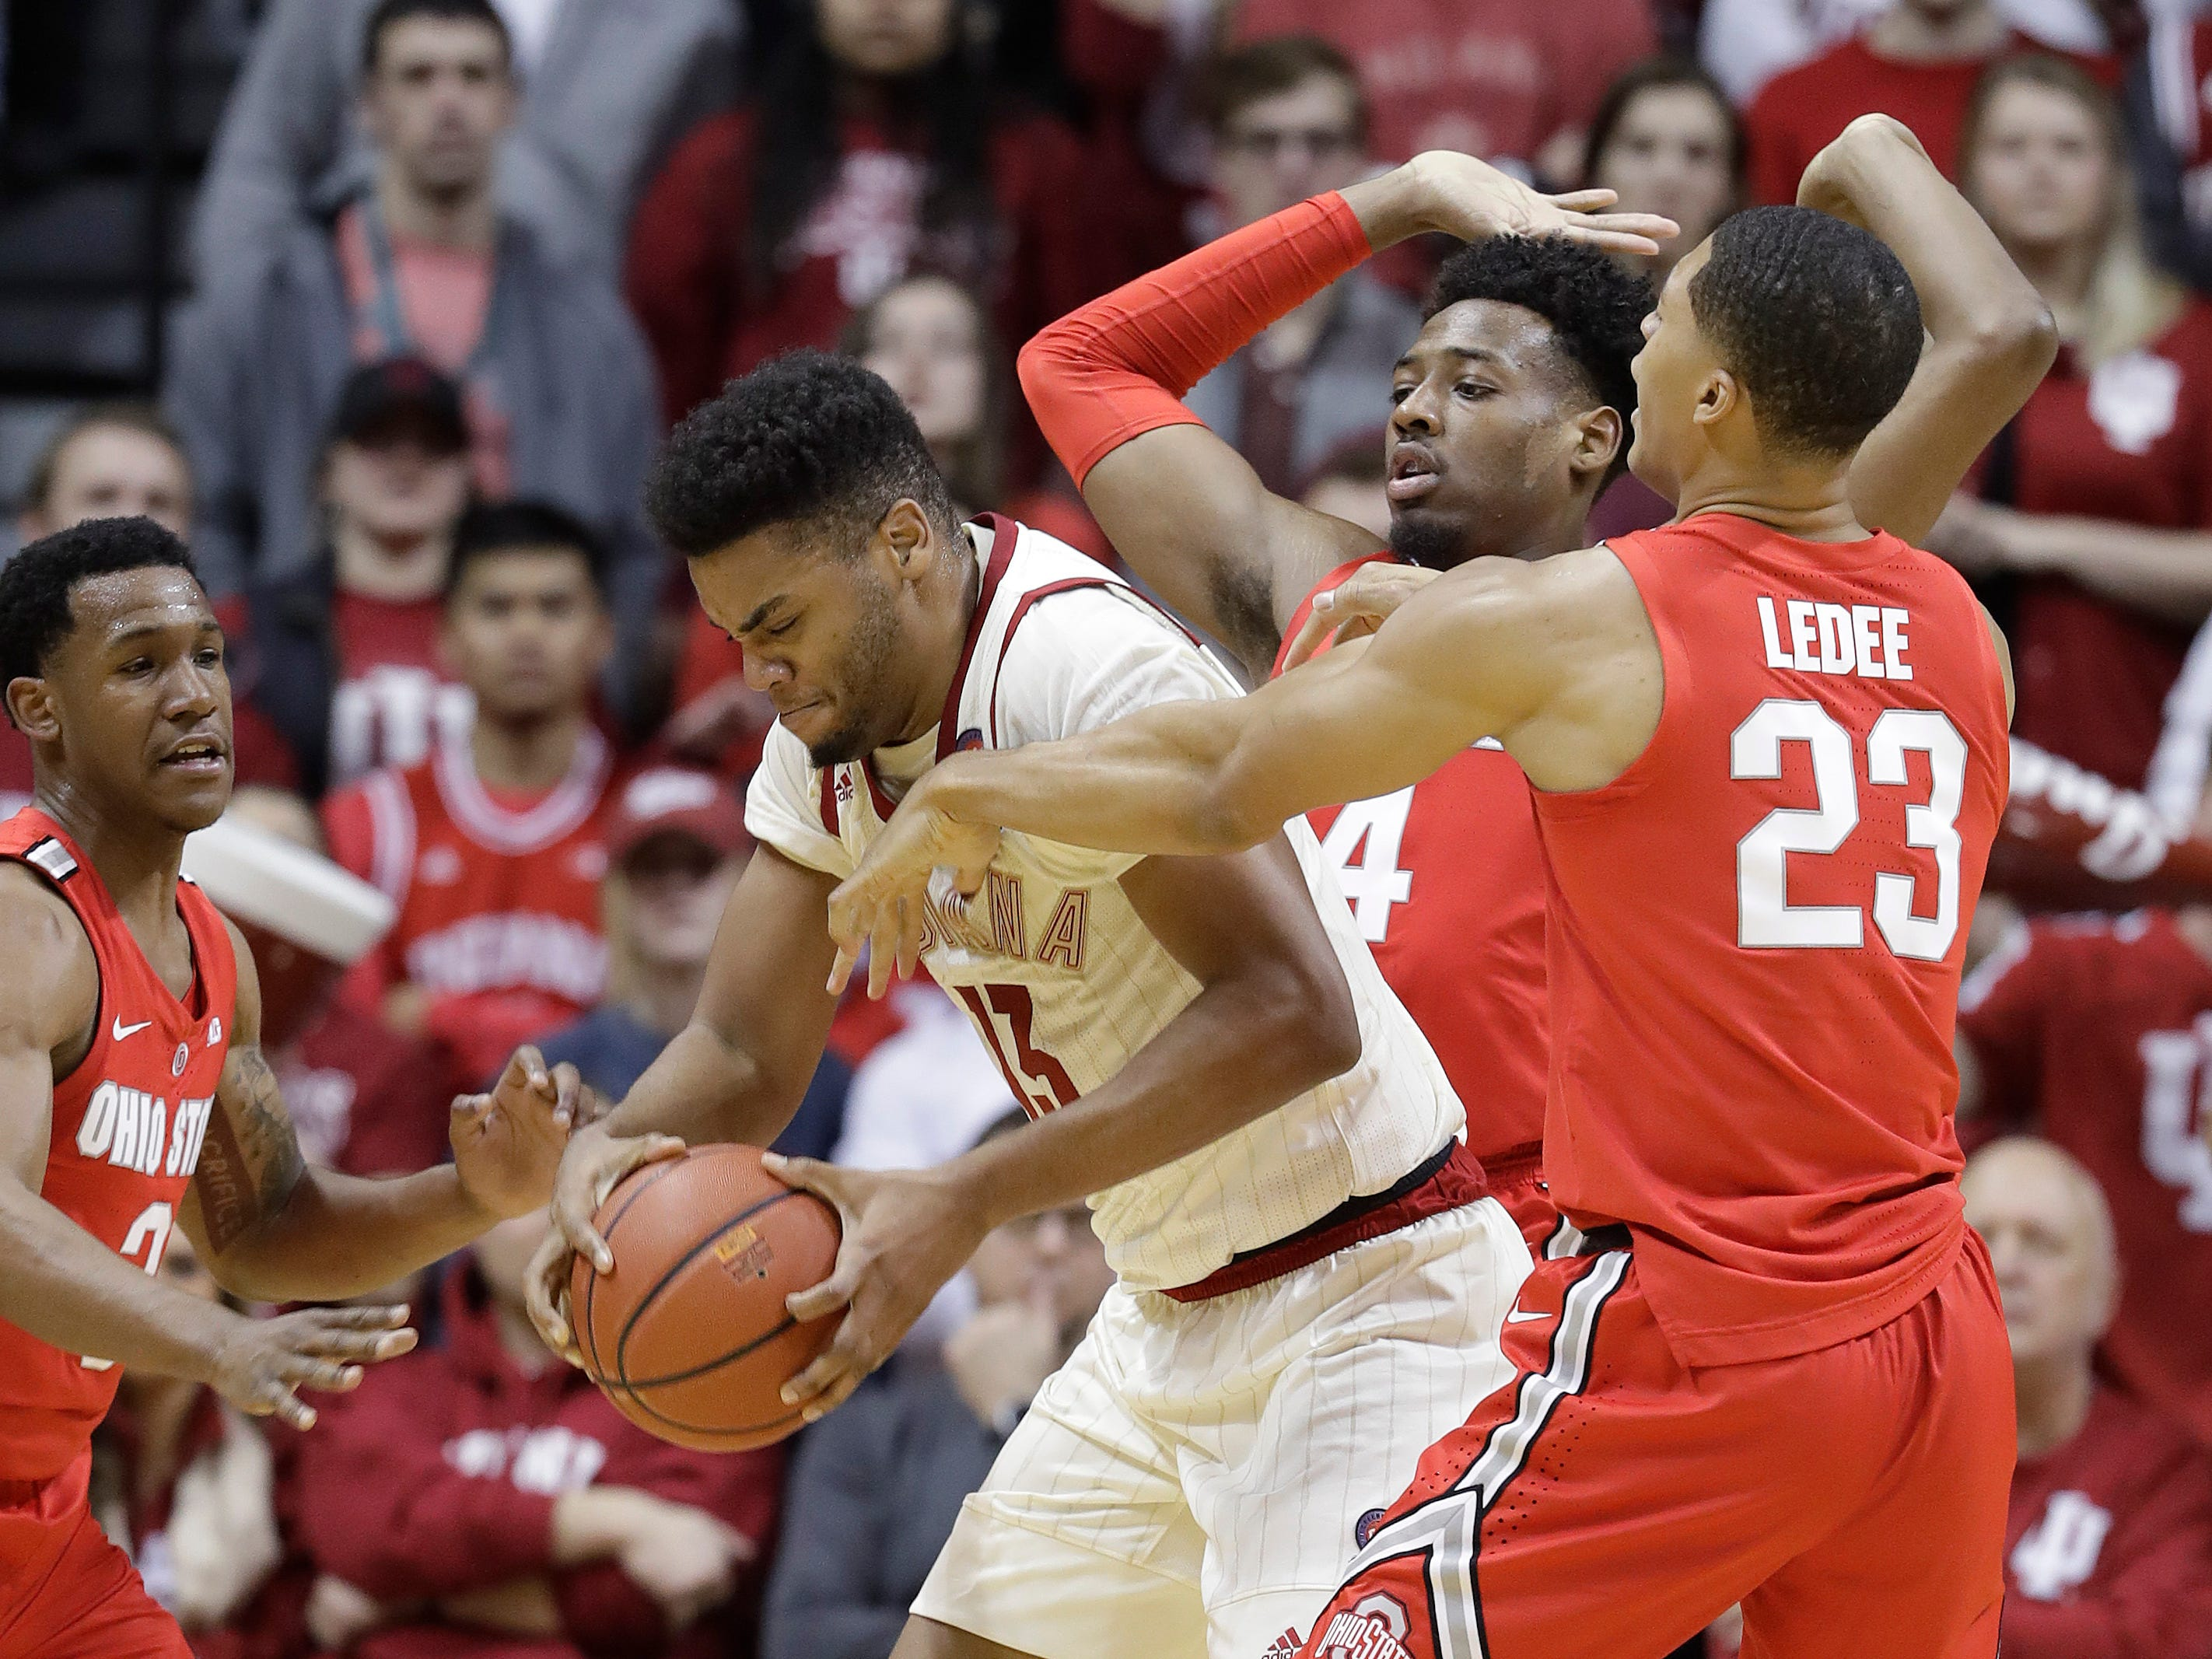 Indiana's Juwan Morgan (13) is defended by Ohio State's C.J. Jackson (3), Andre Wesson (24) and Jaedon LeDee (23) during the first half of an NCAA college basketball game, Sunday, Feb. 10, 2019, in Bloomington, Ind. (AP Photo/Darron Cummings)